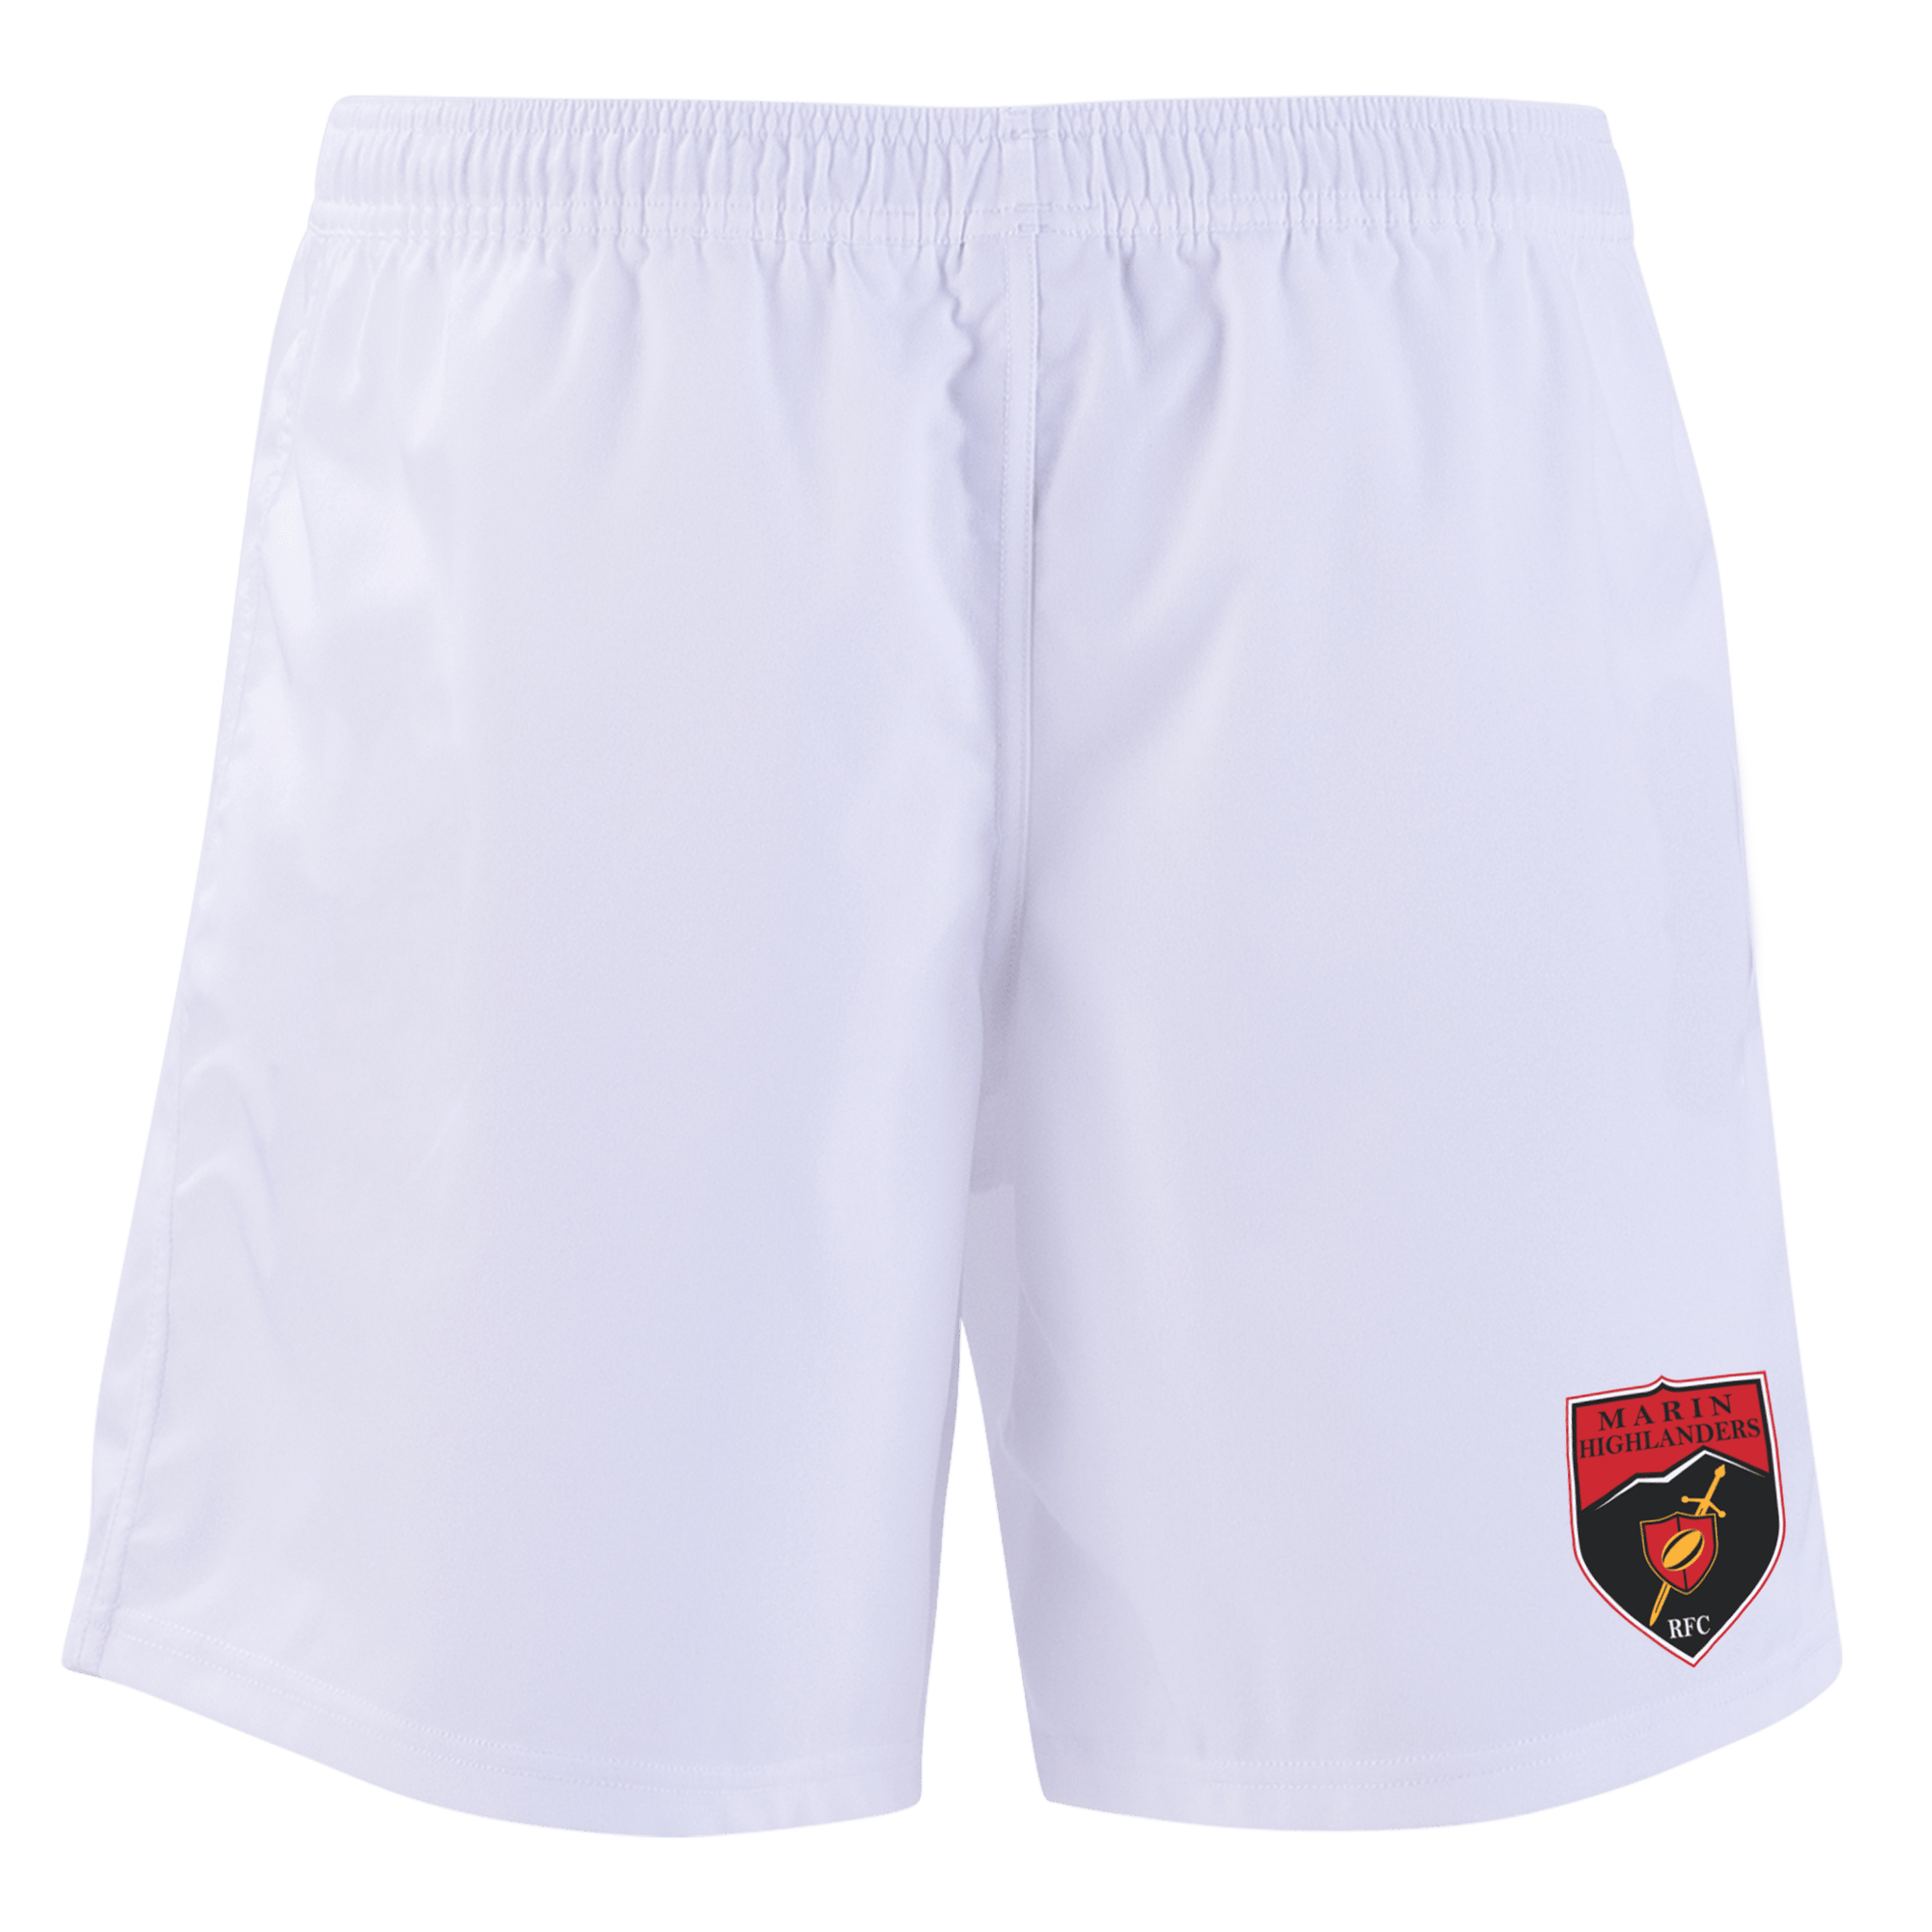 Marin Highlanders Rugby Men's Sideline Shorts